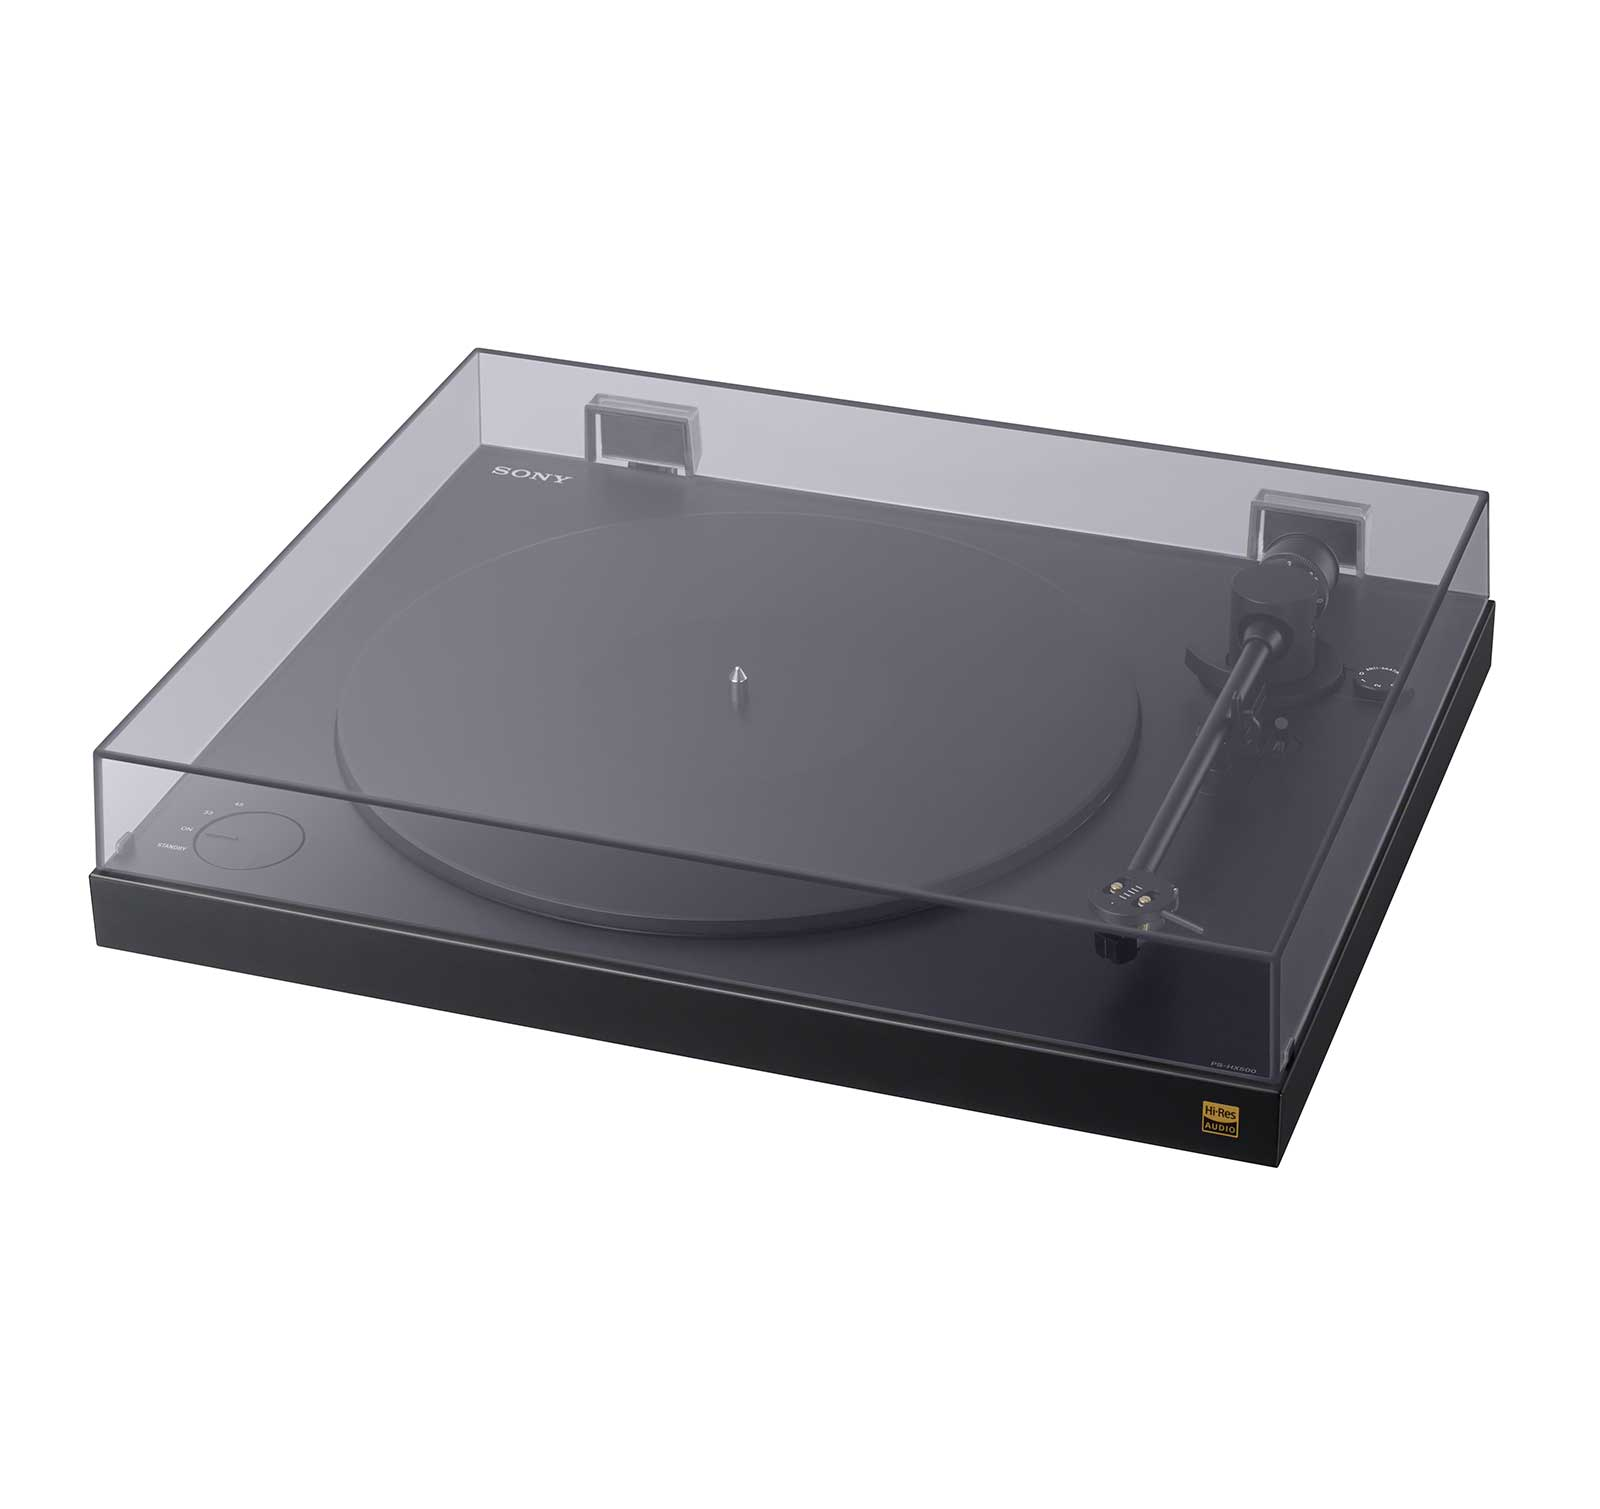 Sony PS-HX500 Open Box USB Turntable with High-Resolution Recording by Sony